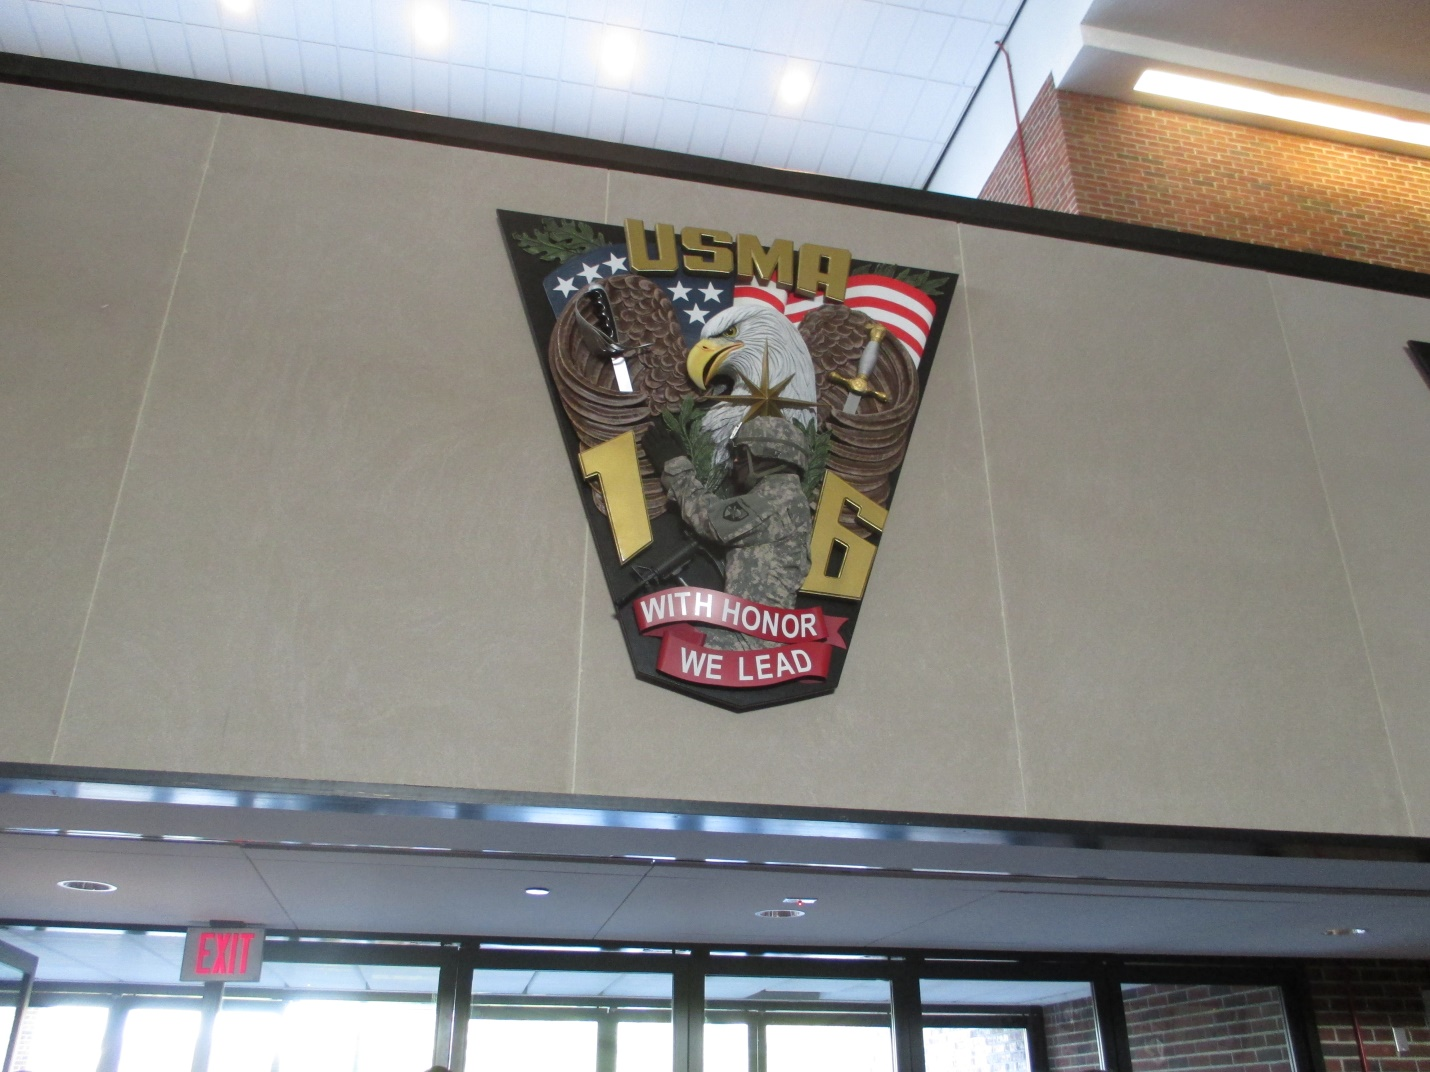 An eagle symbol 2016 on the wall for US military in west point new York.